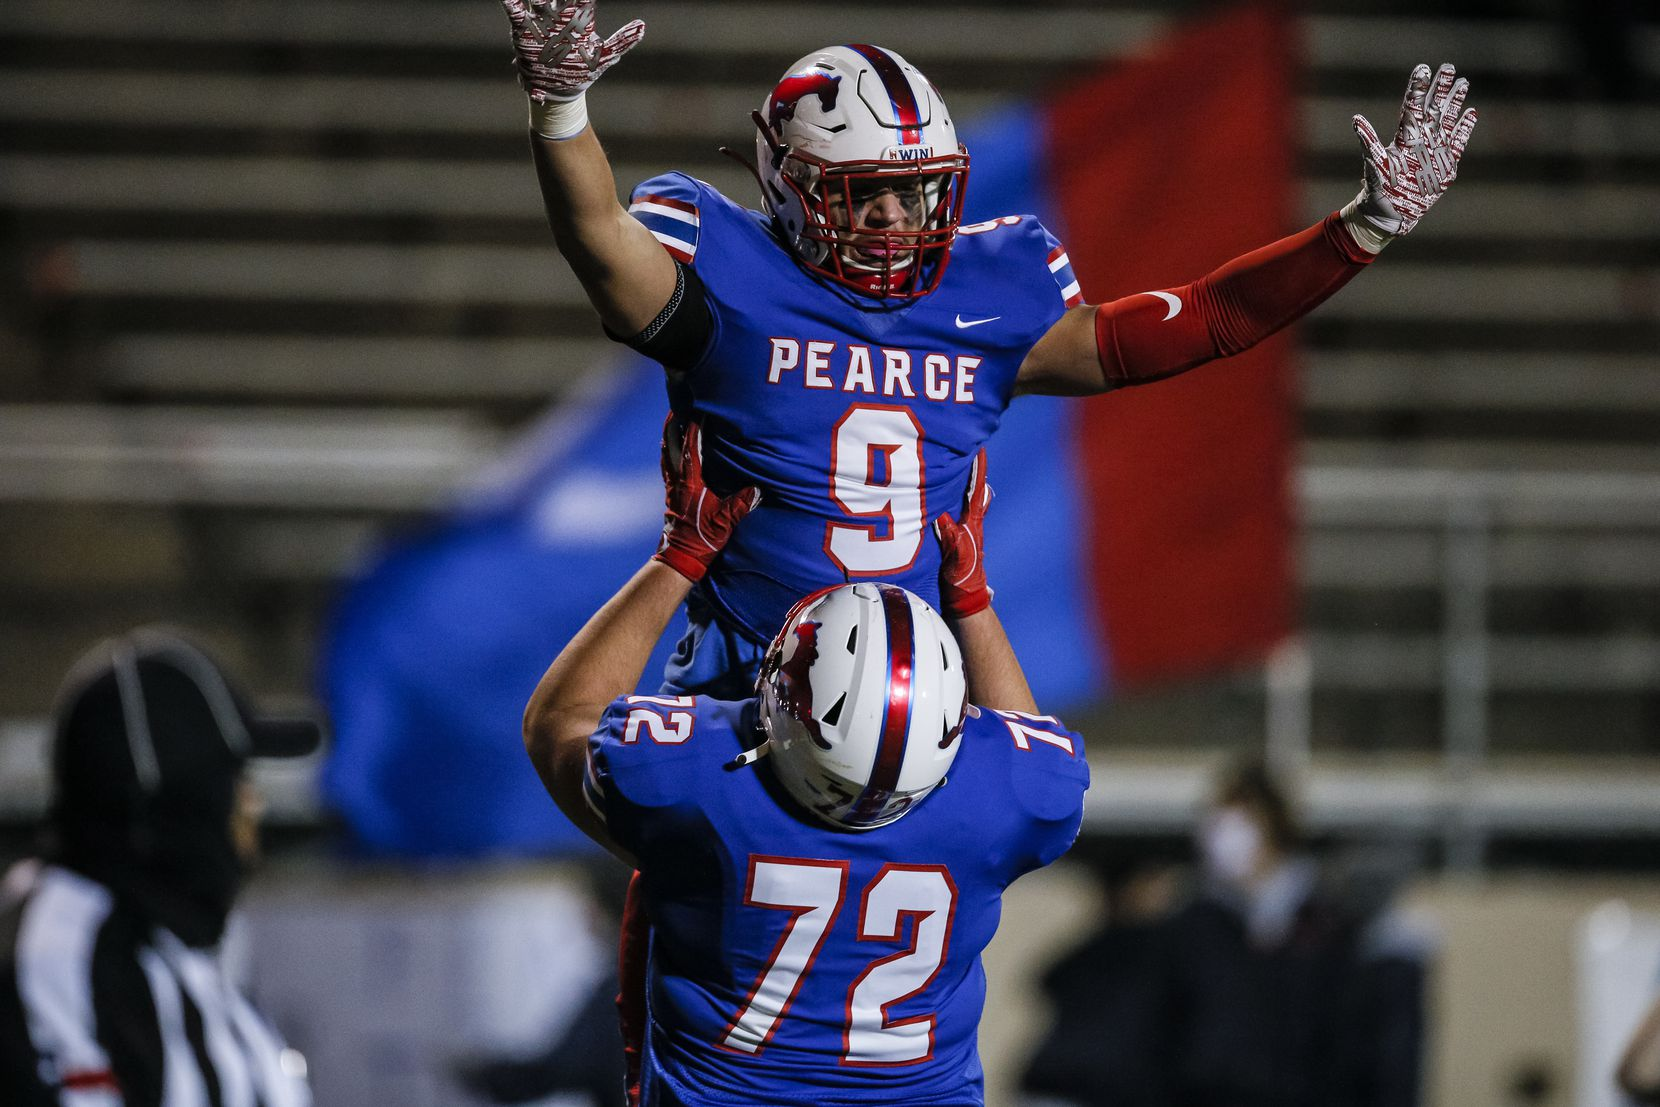 JJ Pearce senior halfback Dylan Adams (9) is lifted into the air by junior offensive lineman Canyon Wadsworth (72) in celebration after scoring a touchdown during the first half of a high school playoff football game against Irving MacArthur at Eagle-Mustang Stadium in Richardson, Thursday, December 3, 2020. (Brandon Wade/Special Contributor)